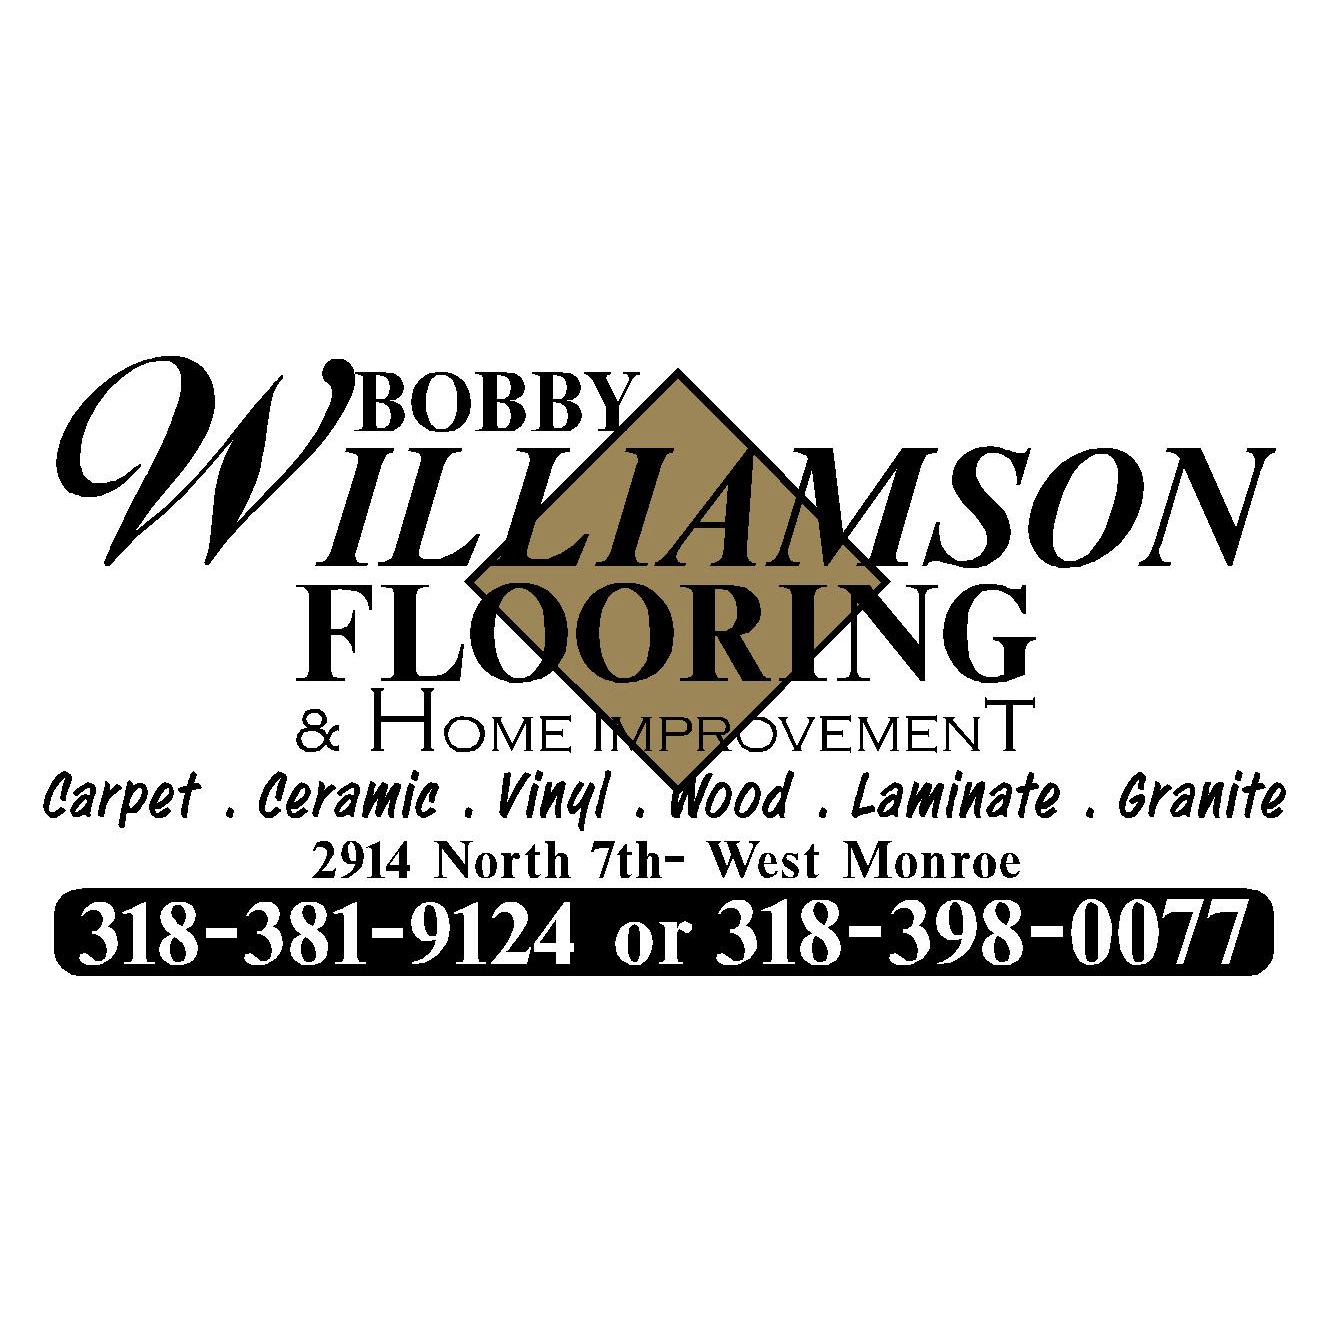 image of Bobby Williamson Flooring & Home Improvement